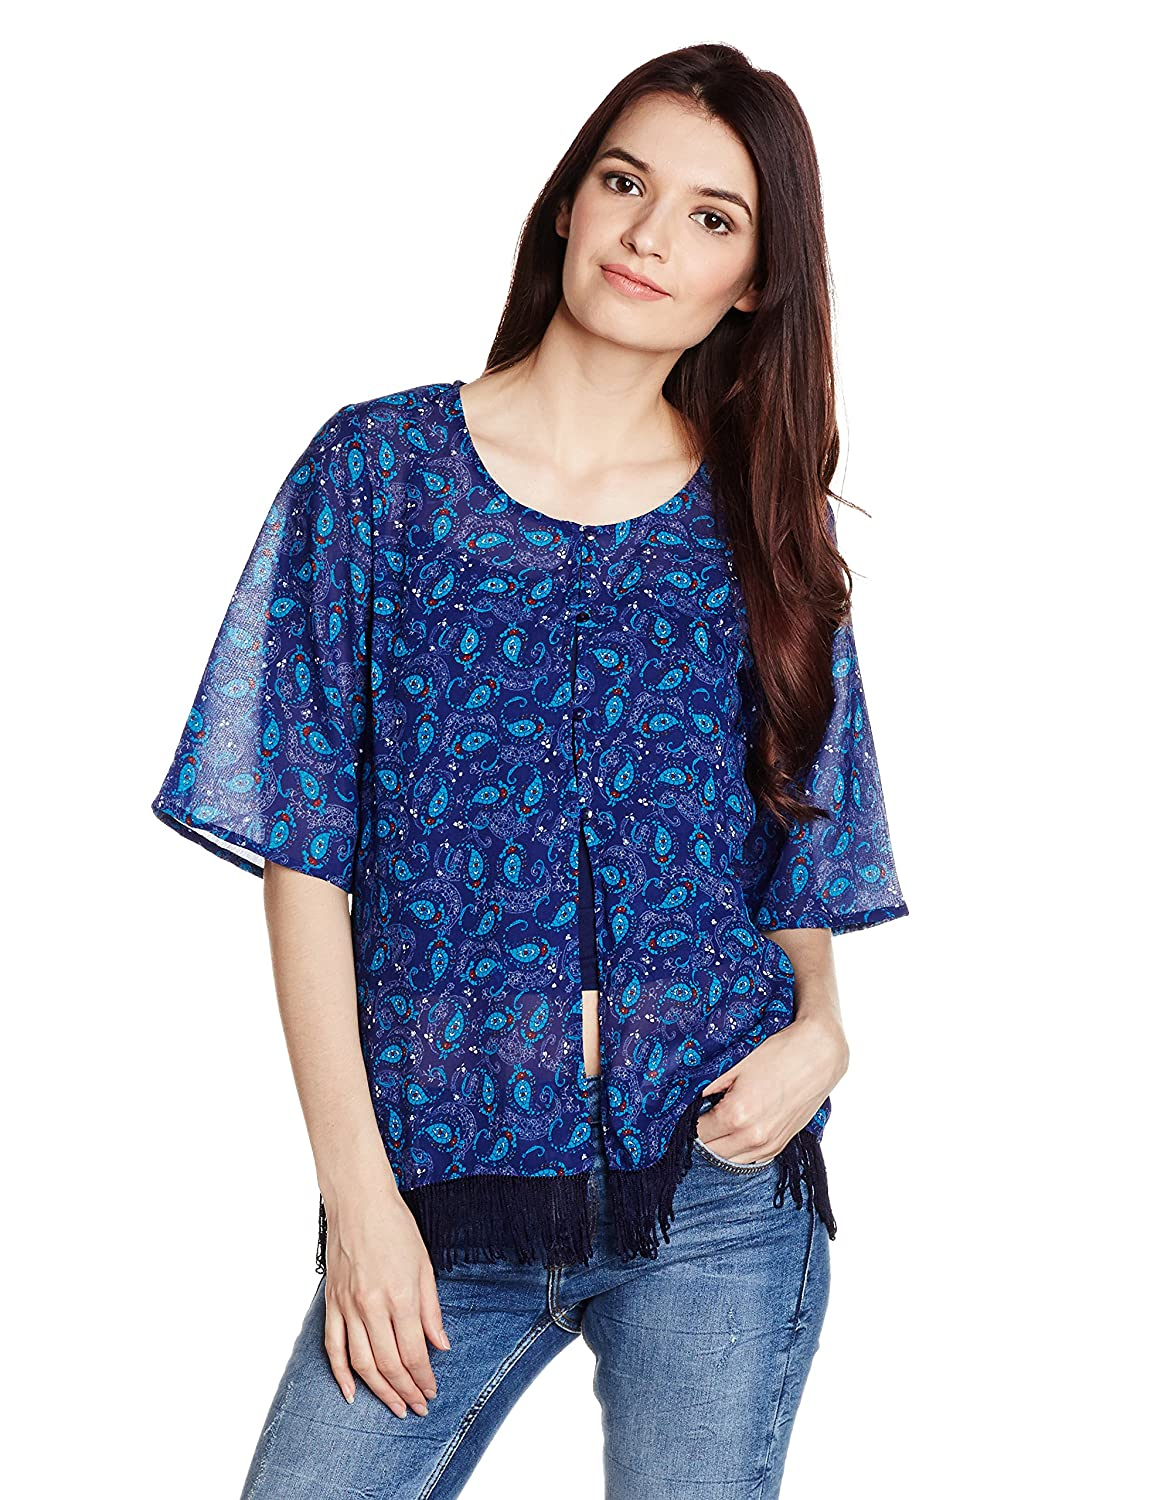 Women's Body Blouse Shirt new look